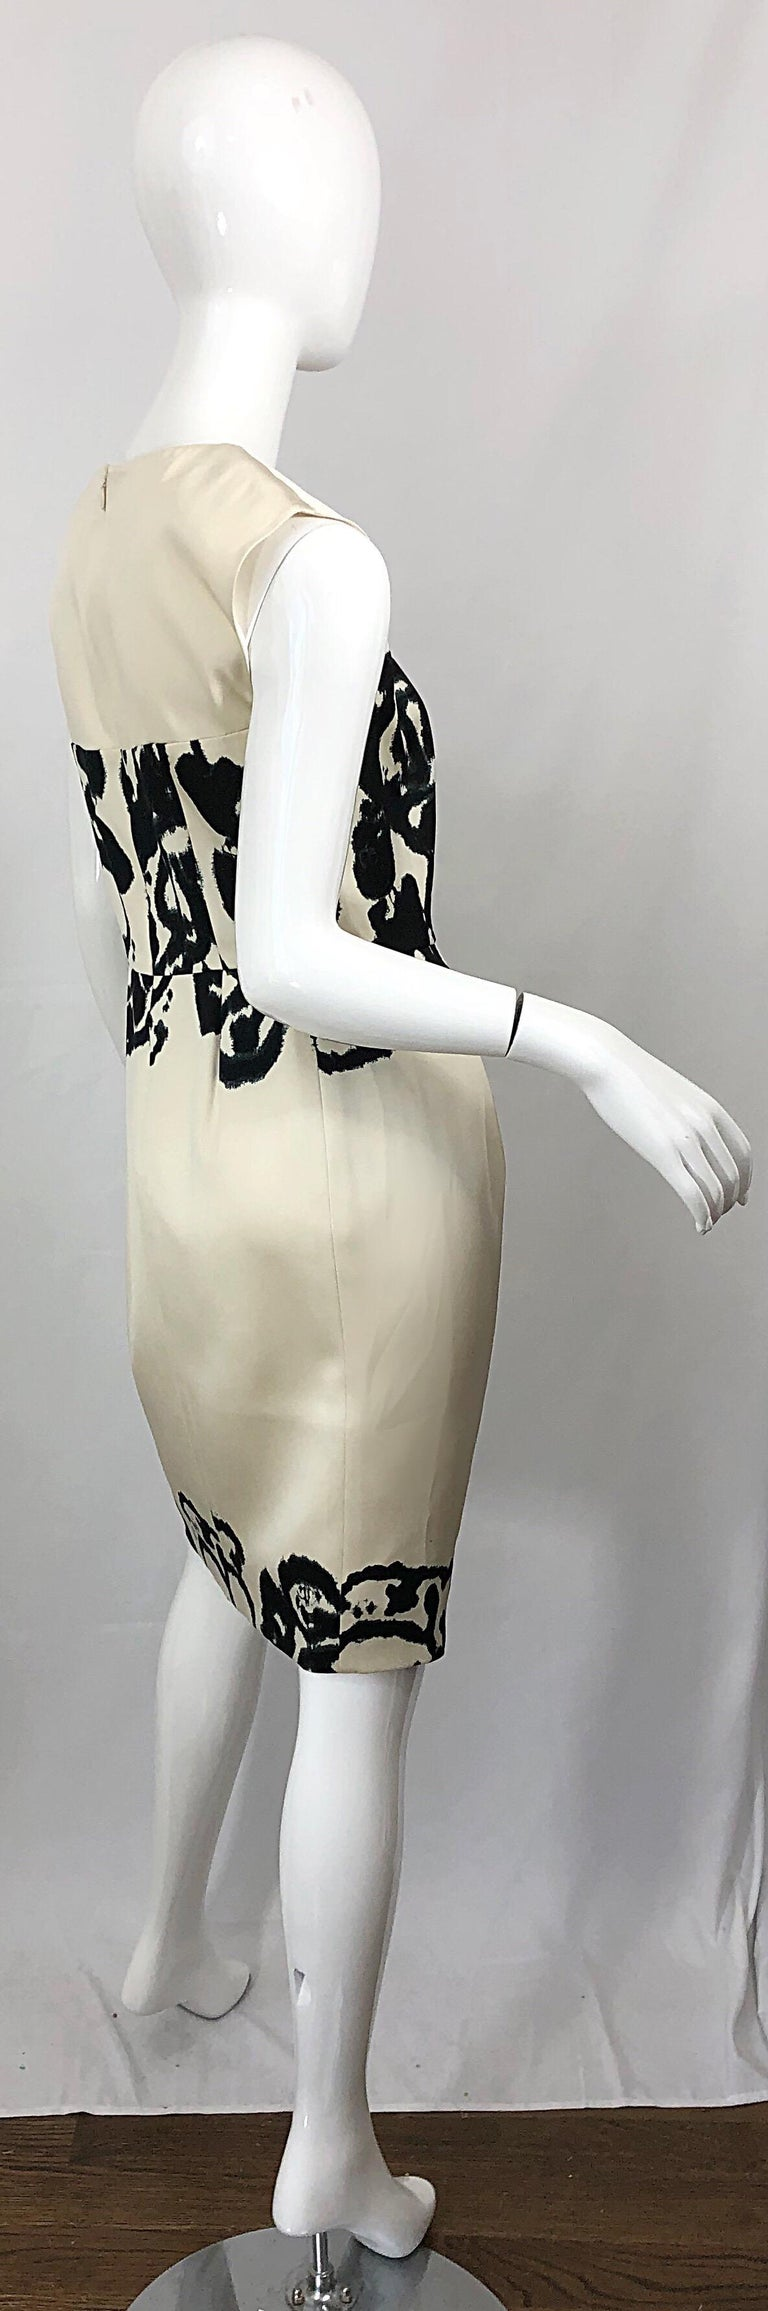 New Yves Saint Laurent Size 42 / 8-10 Ivory and Black Abstract Print Silk Dress For Sale 8